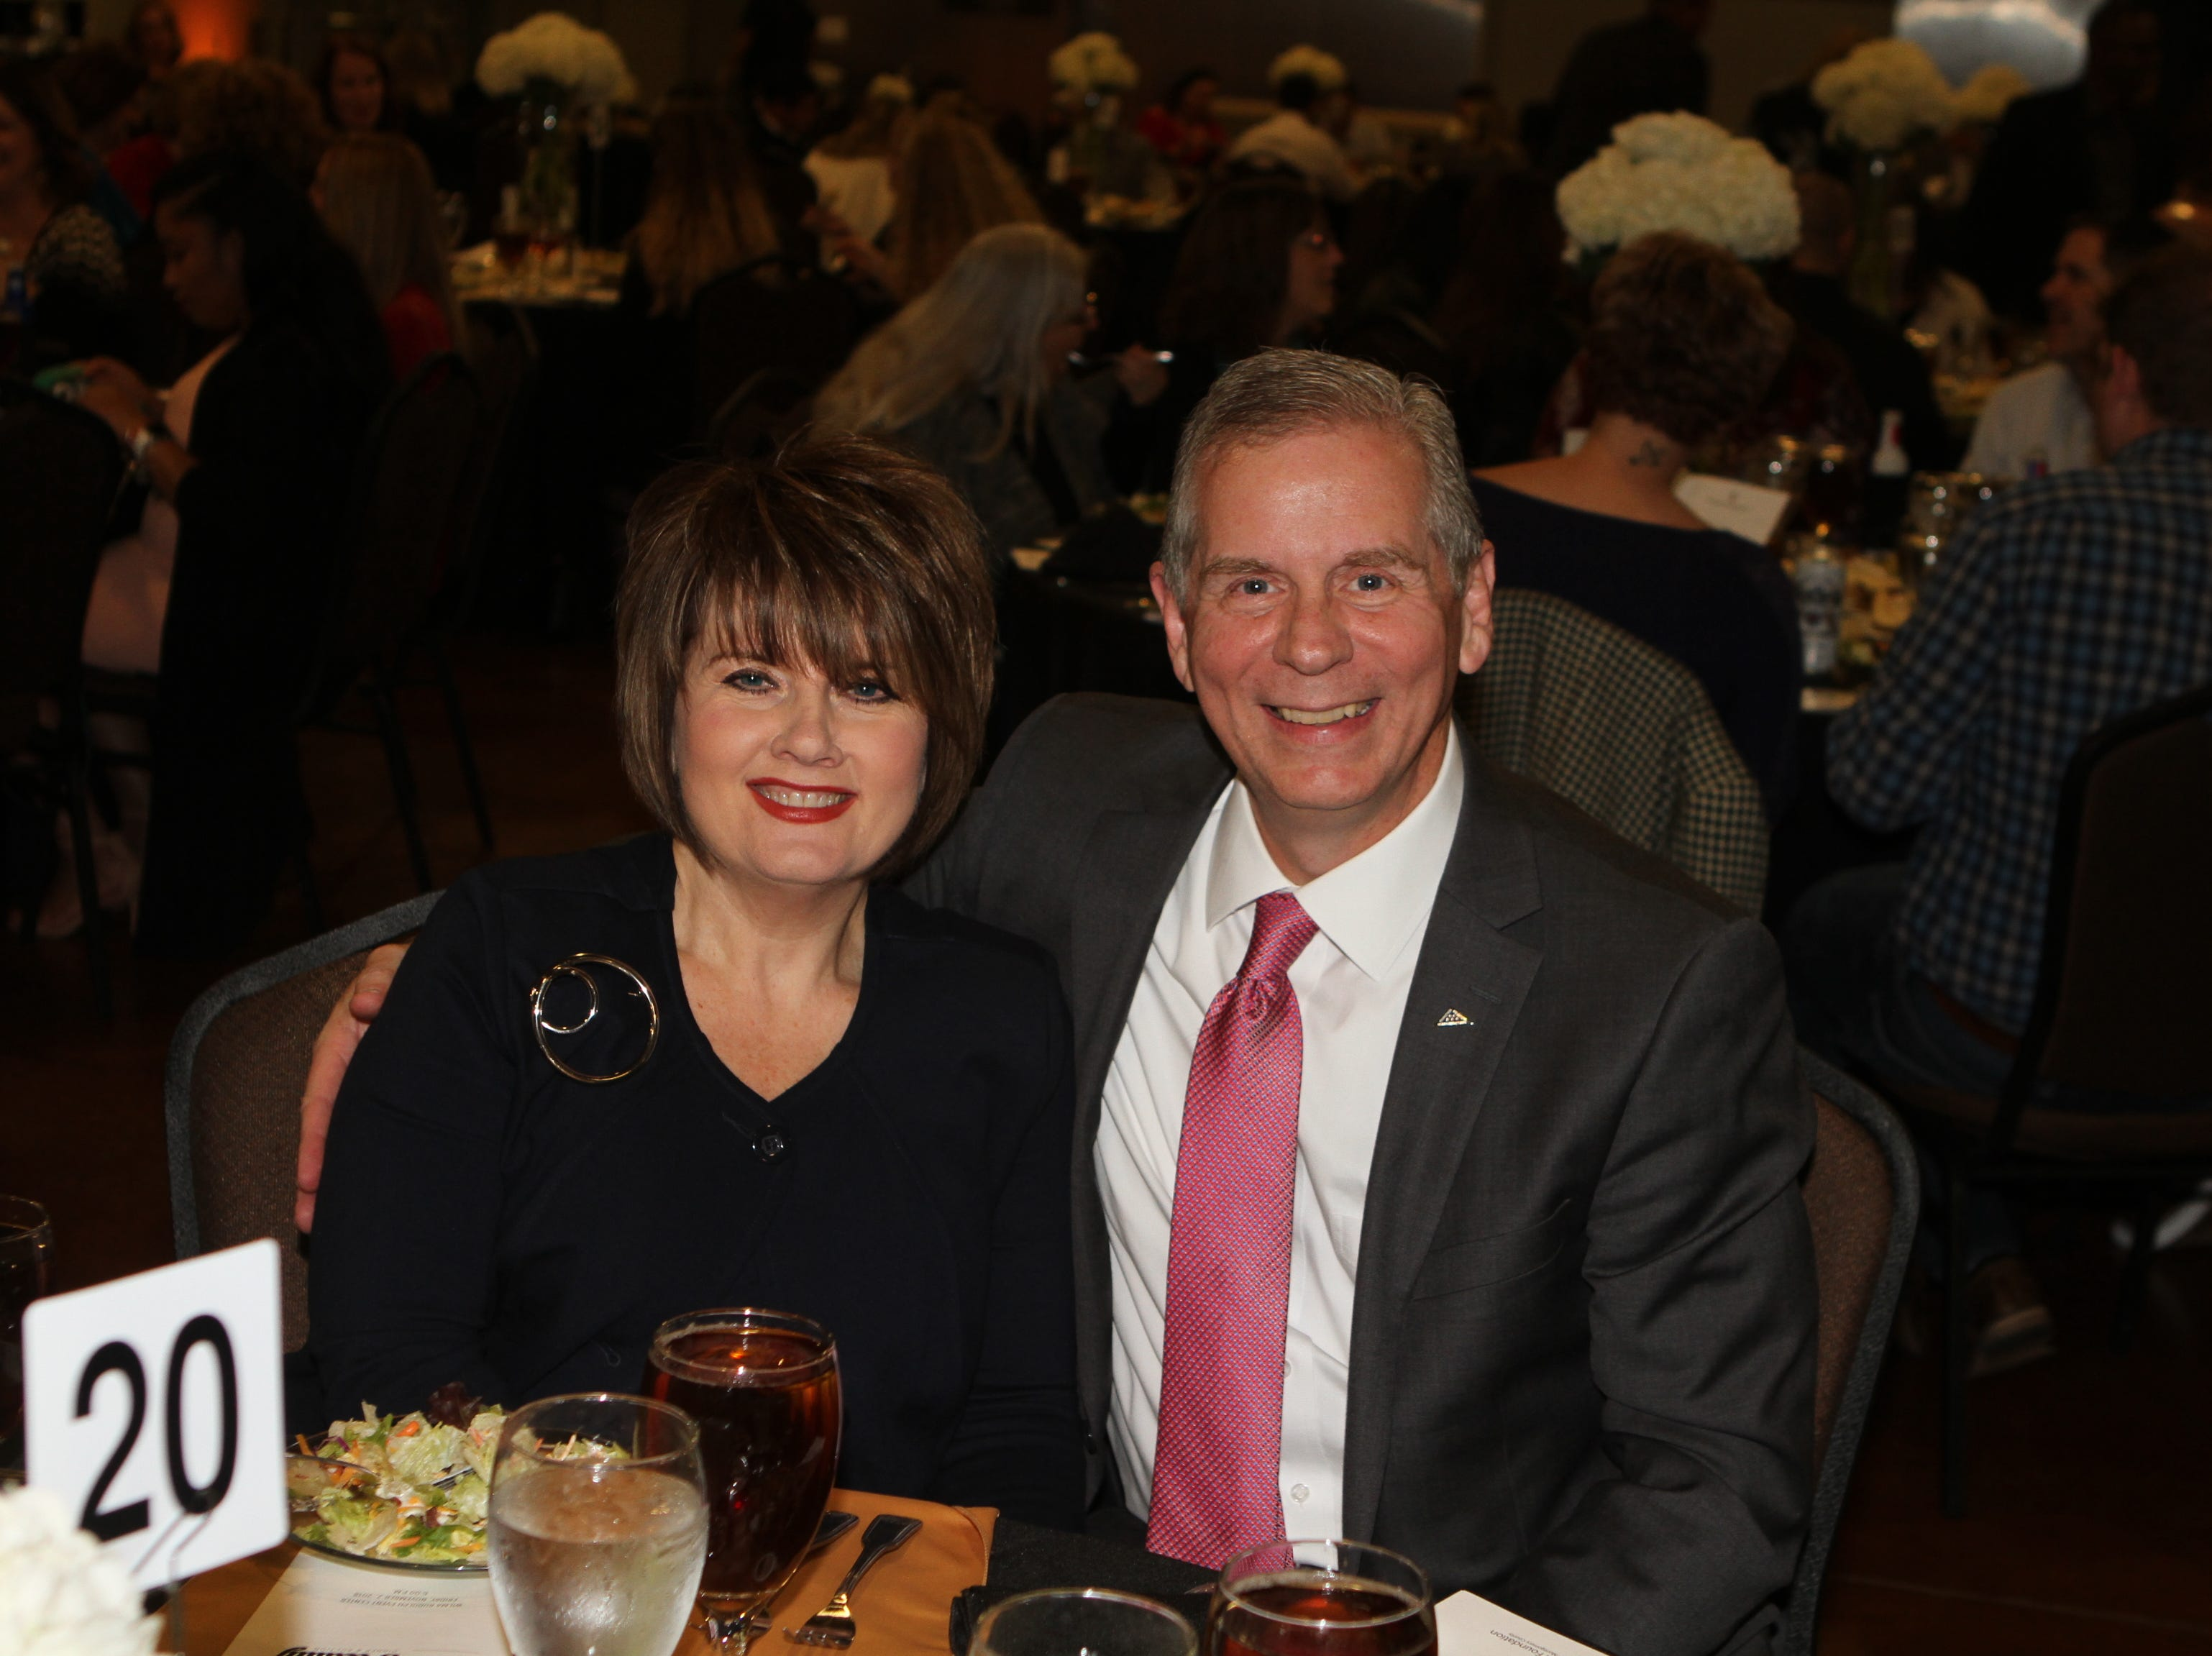 Cindy and Joe Pitts at CMC Education Foundation's annual fundraiser Vision to Reality on Friday, November 2, 2018